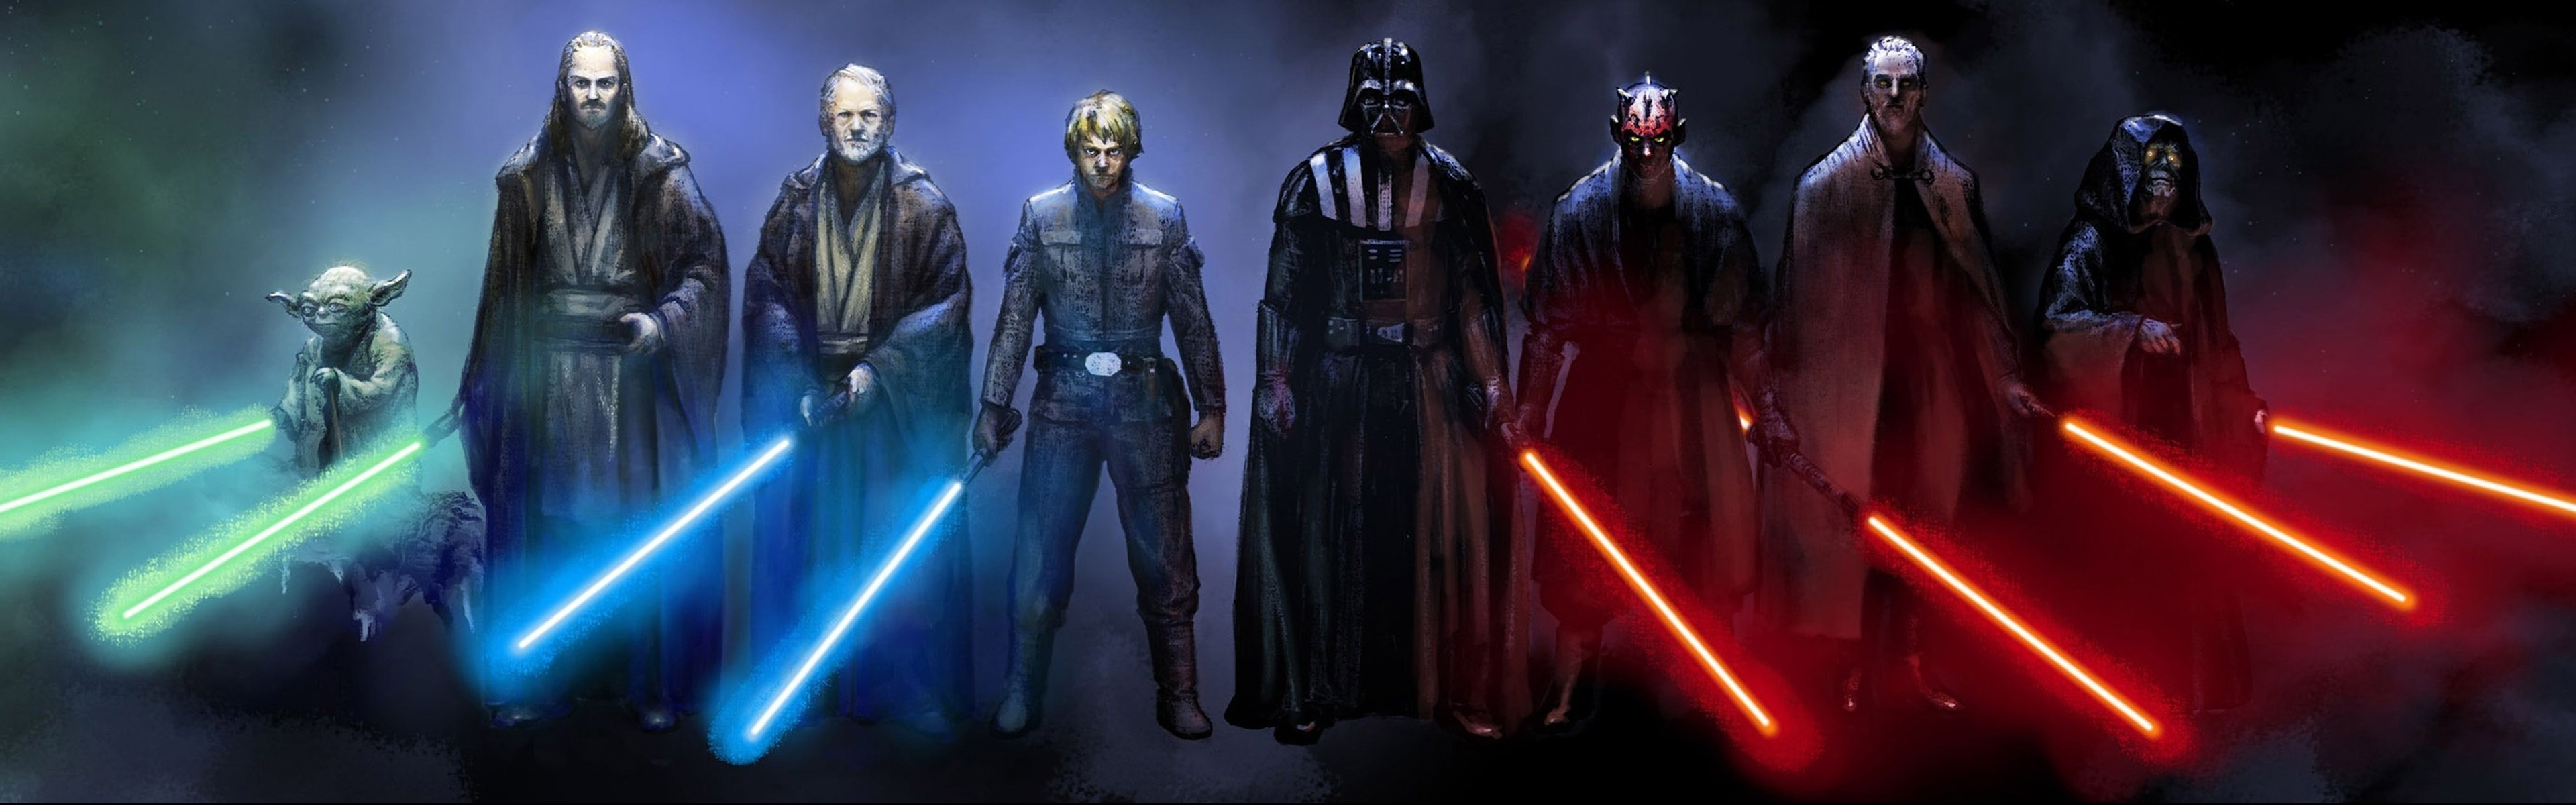 Title Star Wars Dual Monitor Wallpaper 1 Download Free Hd Wallpapers For Dimension 3840 X 1200 File Type JPG JPEG